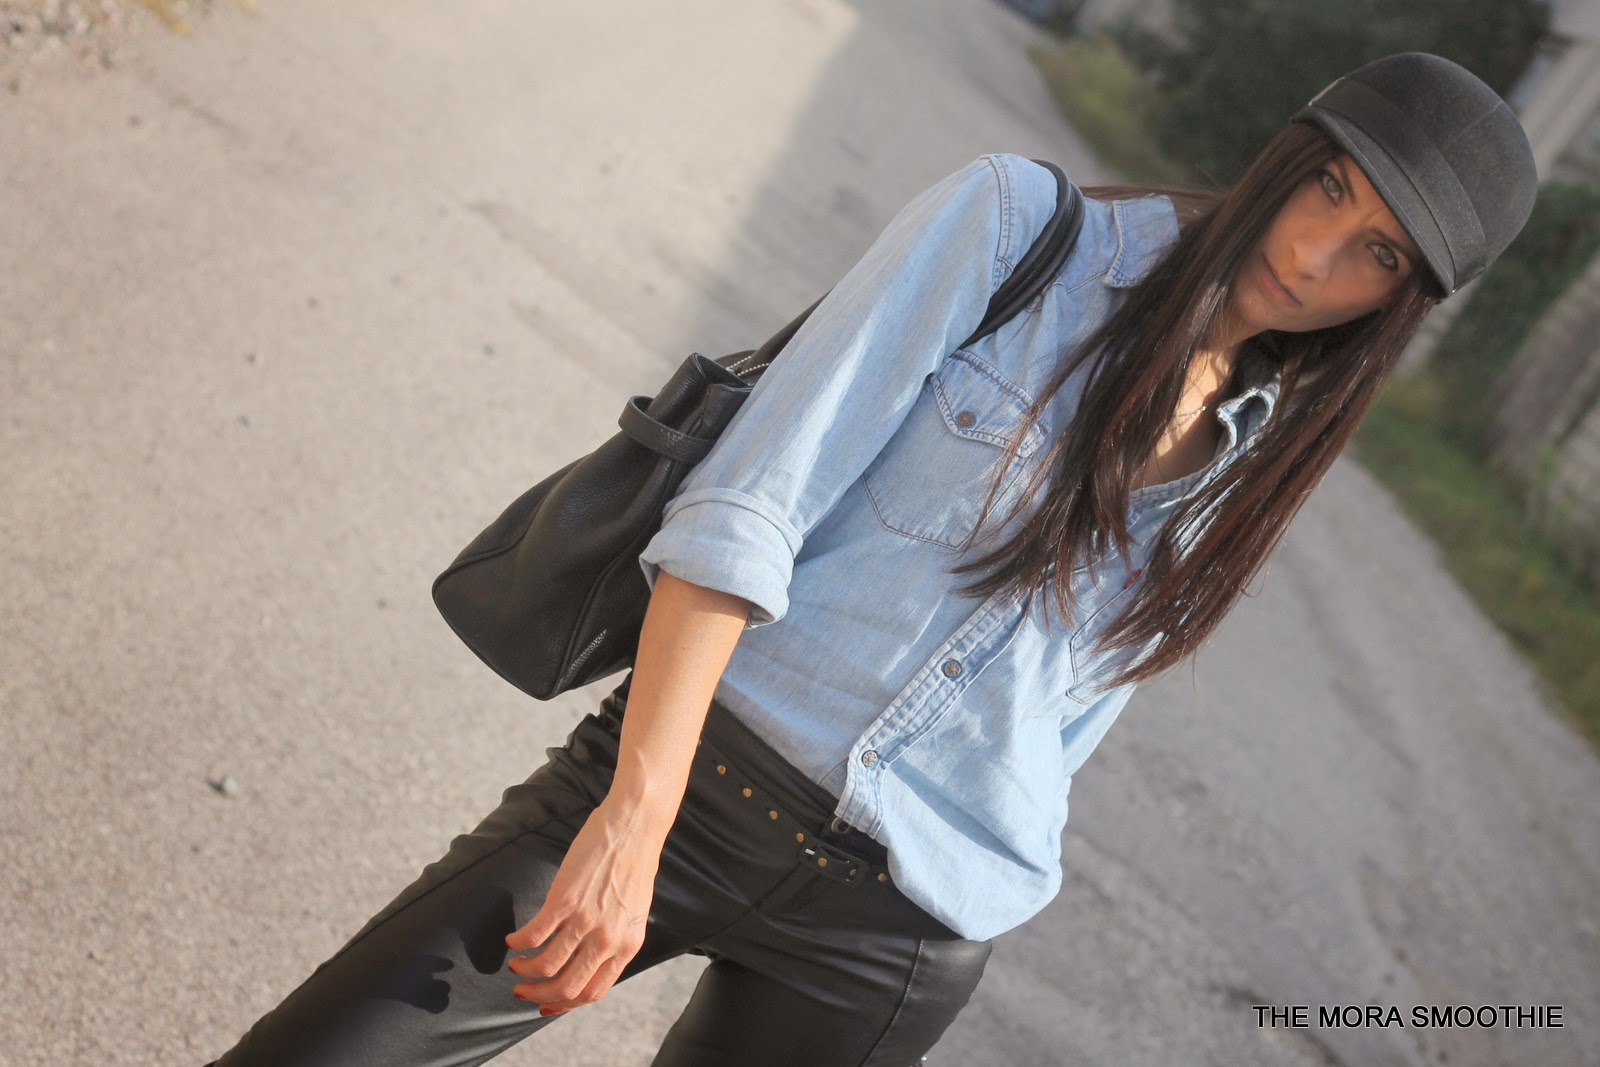 themorasmoothie, fashion, fashionblog, fashionblogger, hat, headict, italianfashionblog, fashionblogitalia, fashionbloggeritaliana, shopping, levi's, shoppingonline, pants, skirt, bag, look, outfit, ootd, lookoftheday, streetstyle